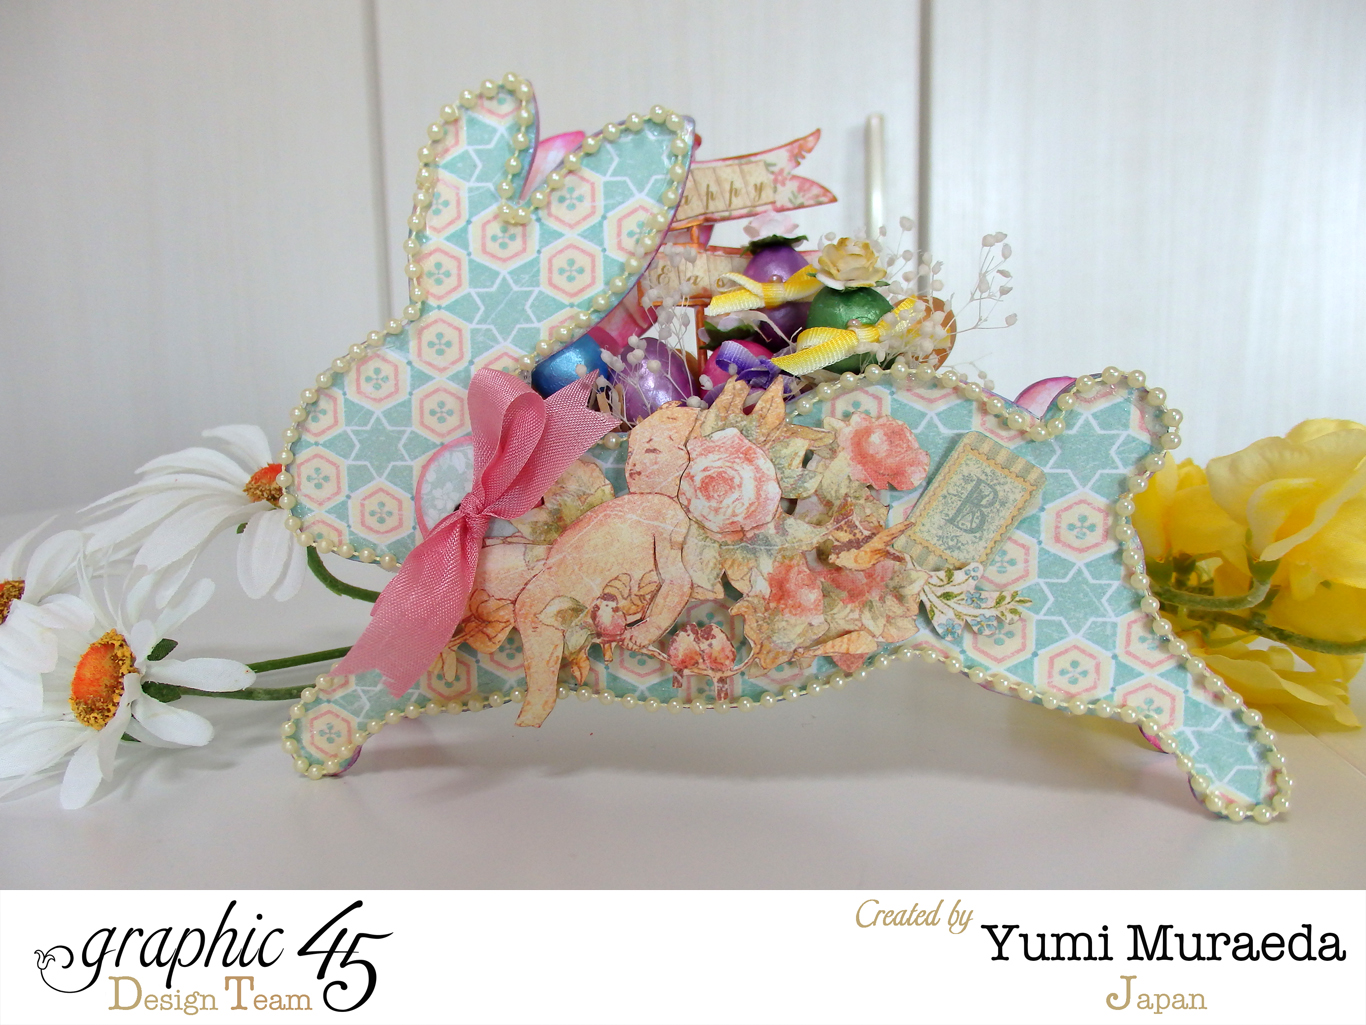 G45 Baby 2 Bride Easter Bunny Wagon and Mini Album2